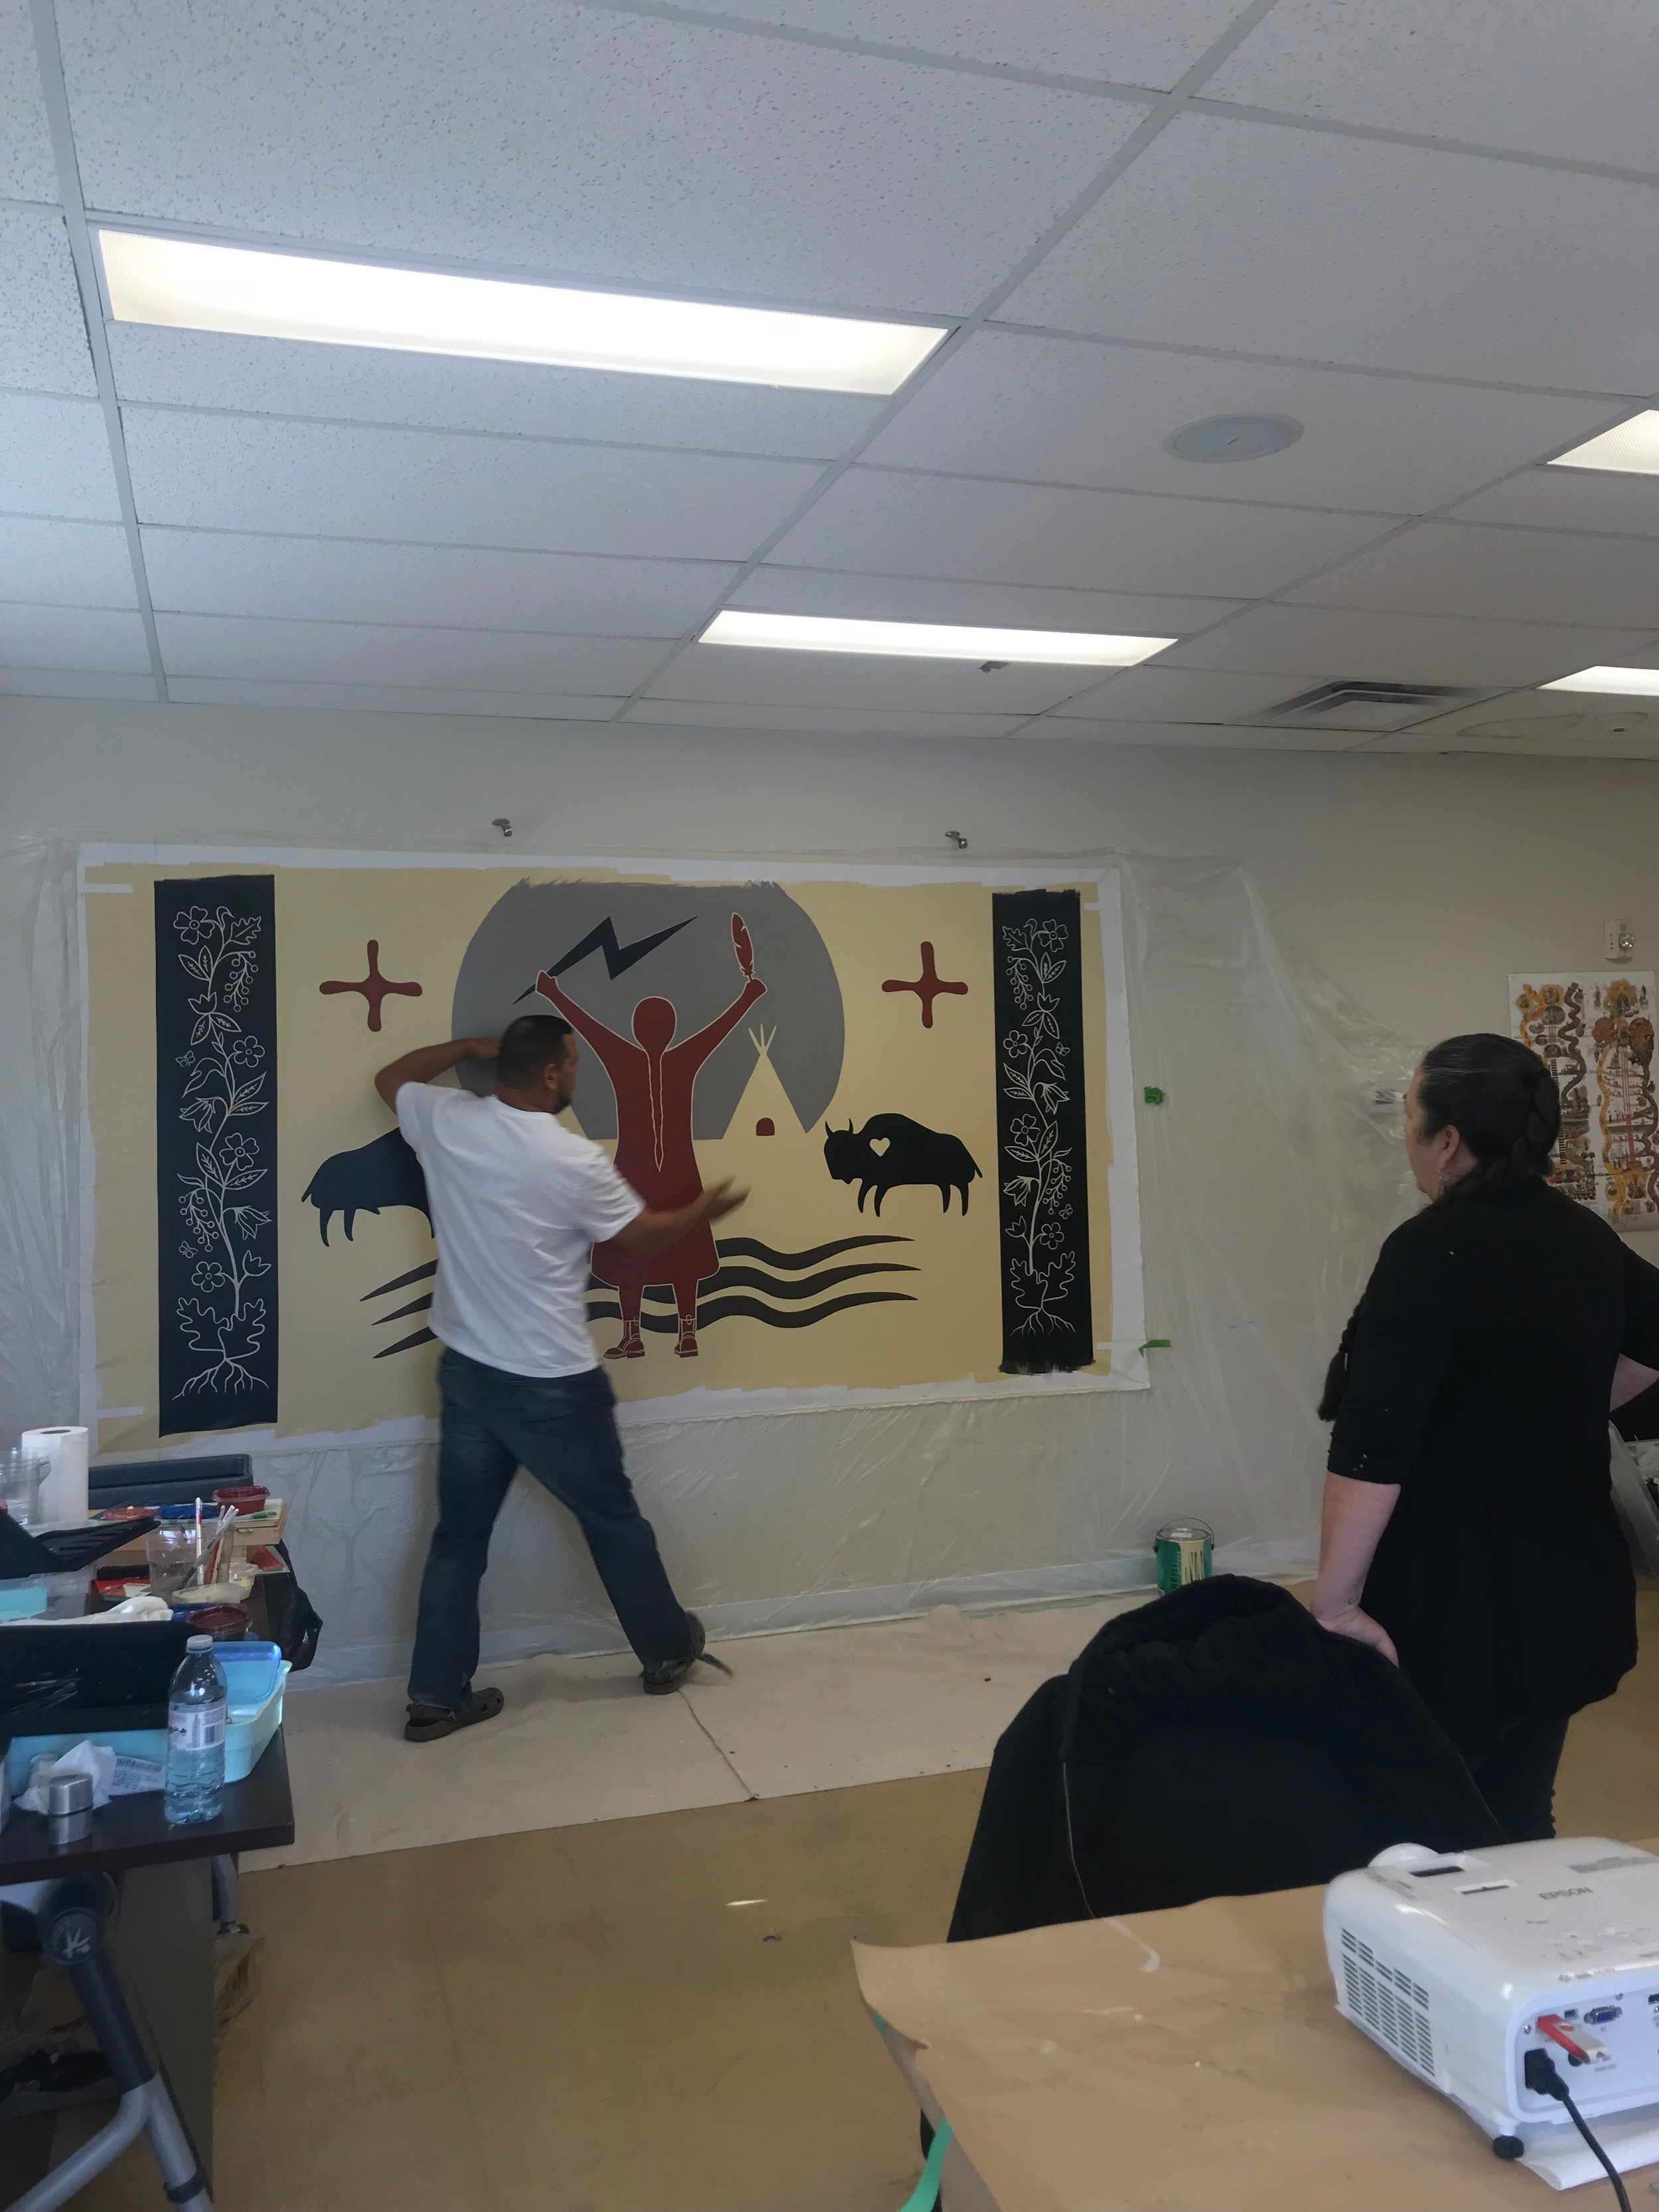 Isaac and Christi working on the mural.